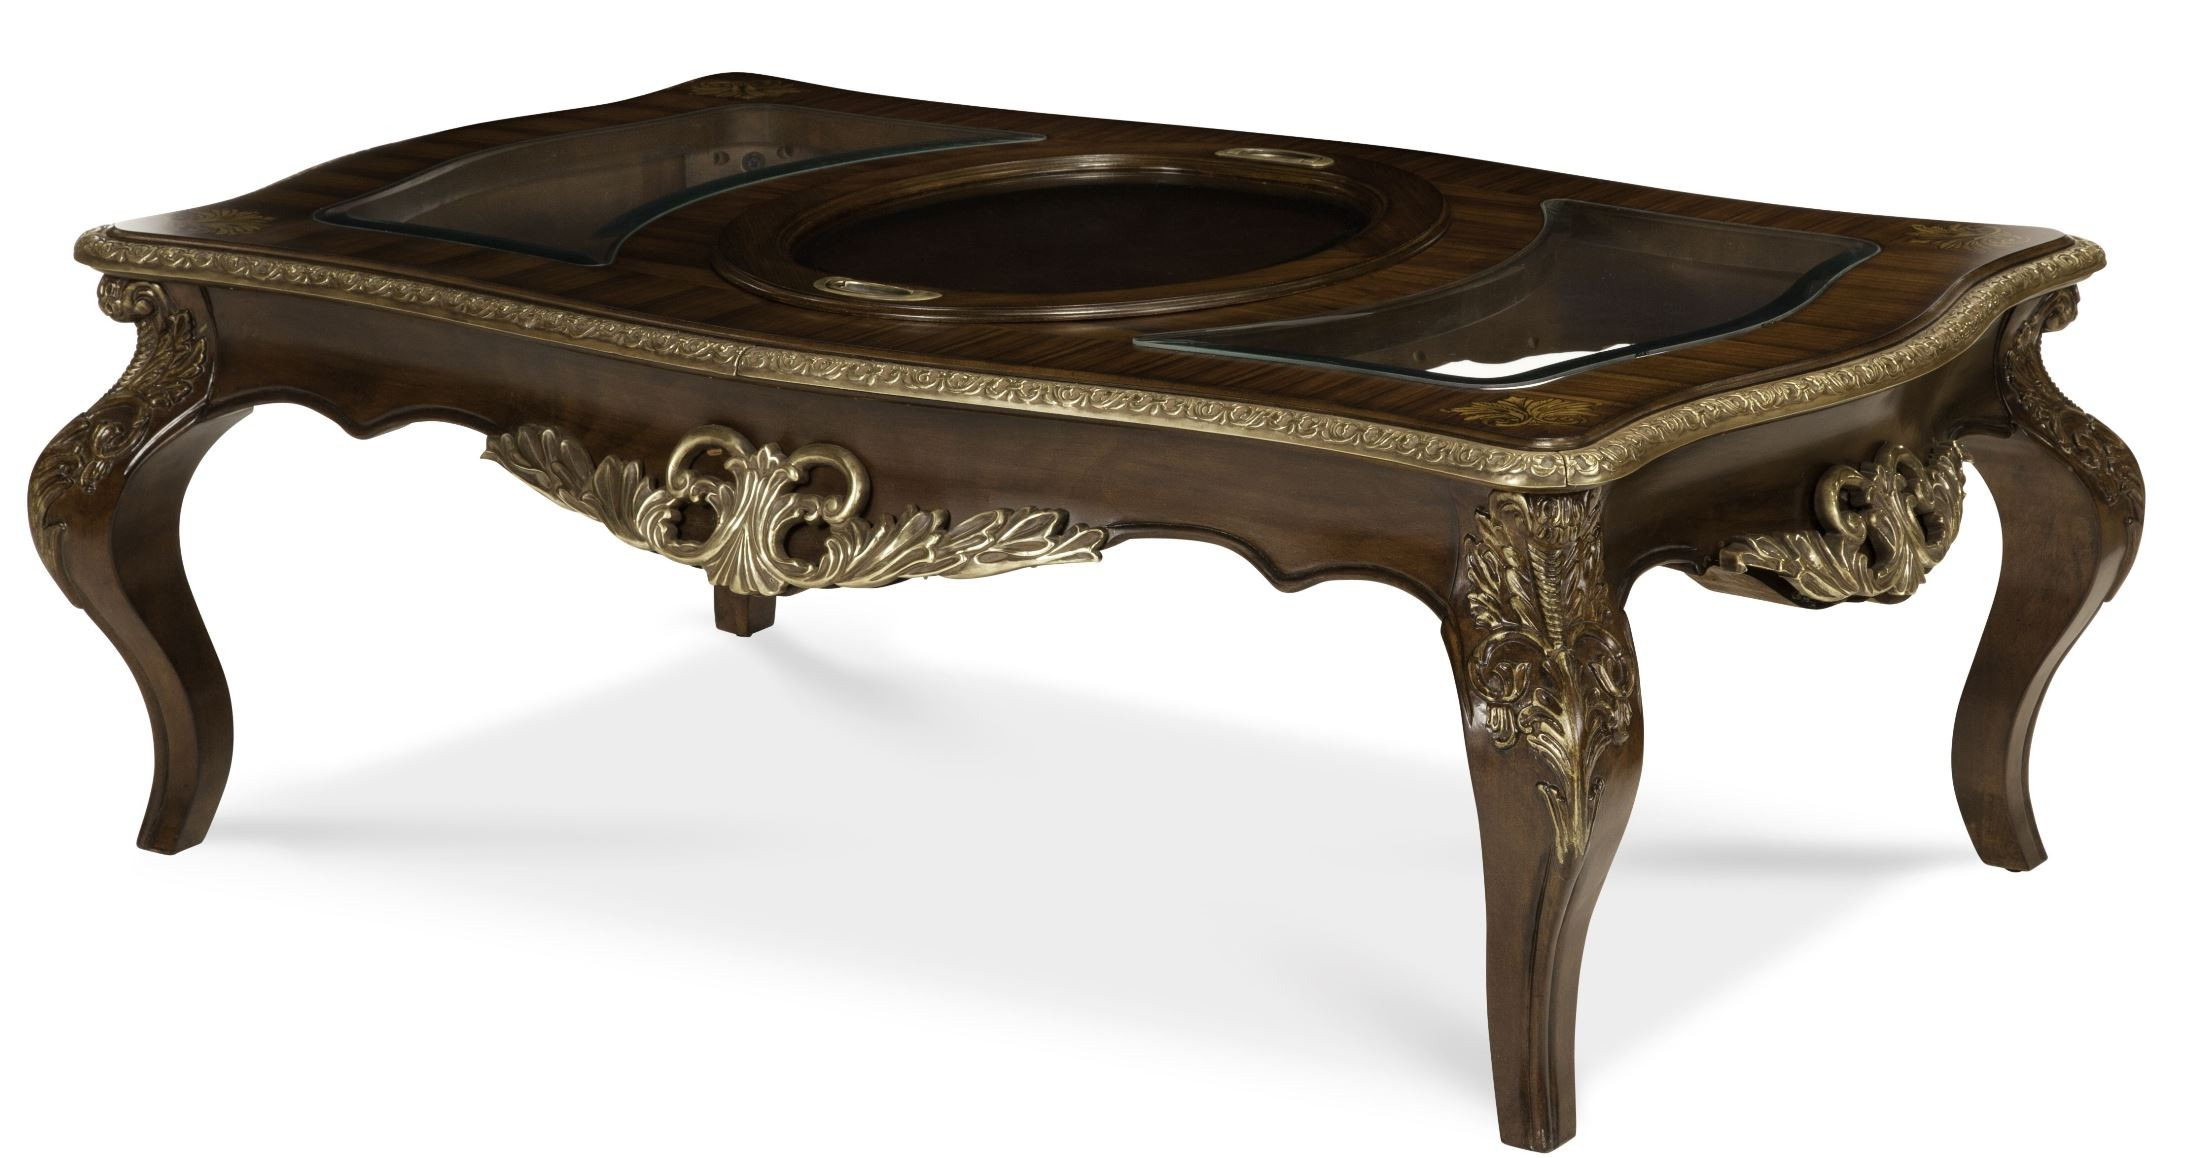 Imperial Court Rectangular Cocktail Table From Aico 79201 40 Coleman Furniture